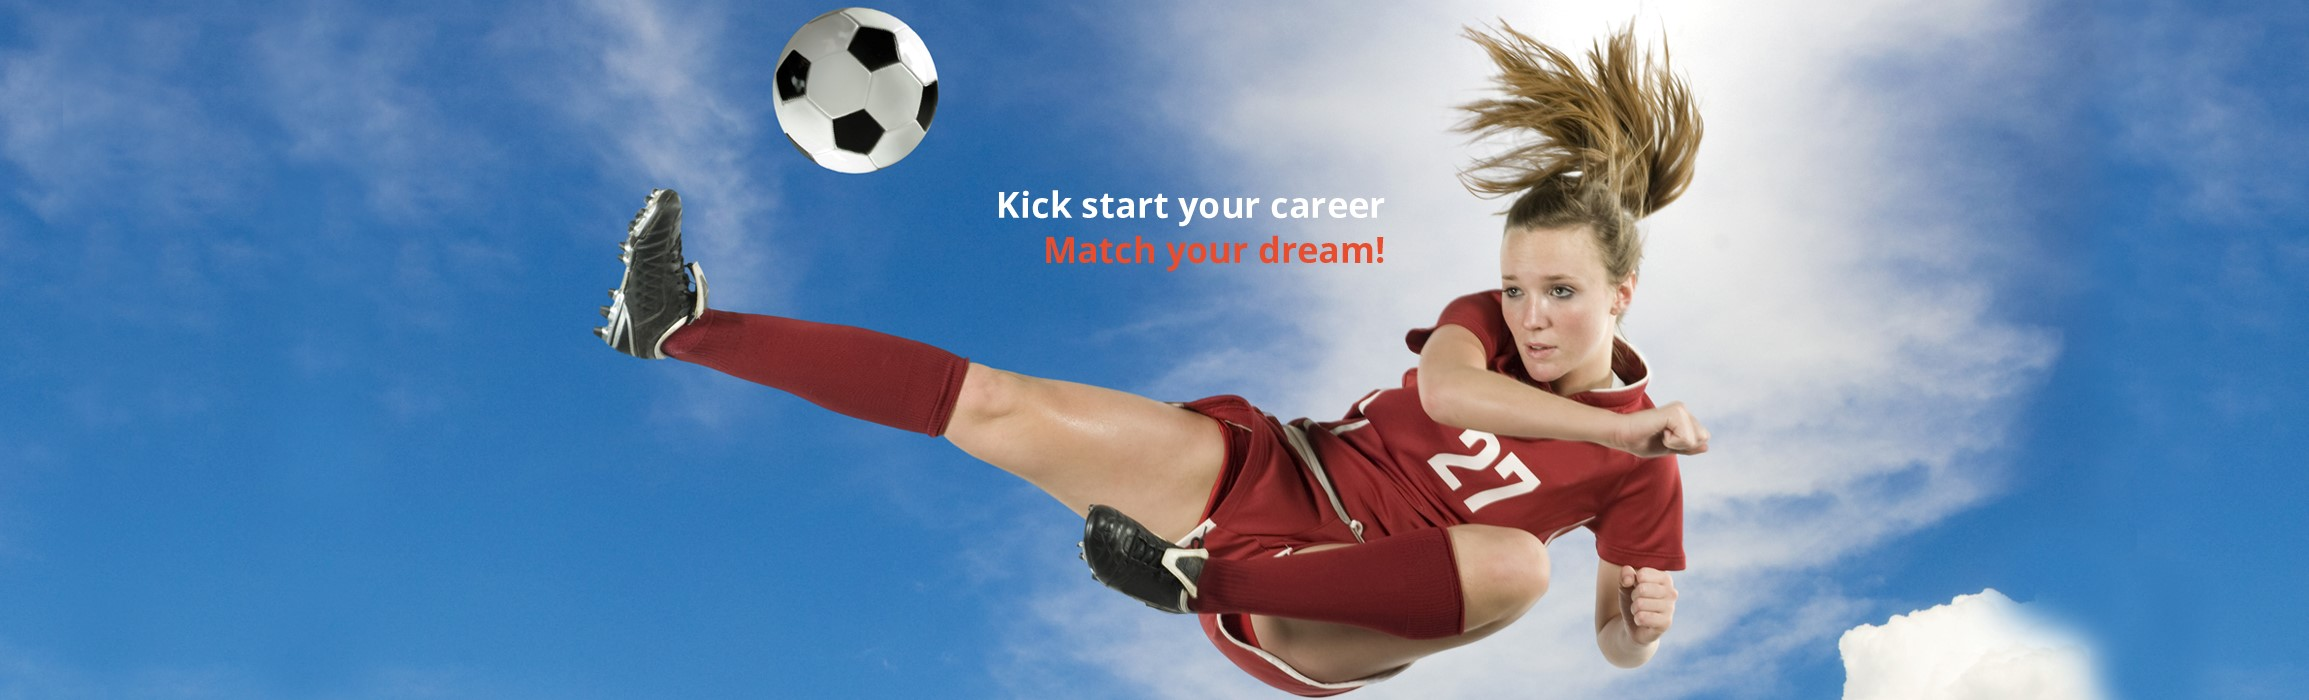 Get a free kick to your career.